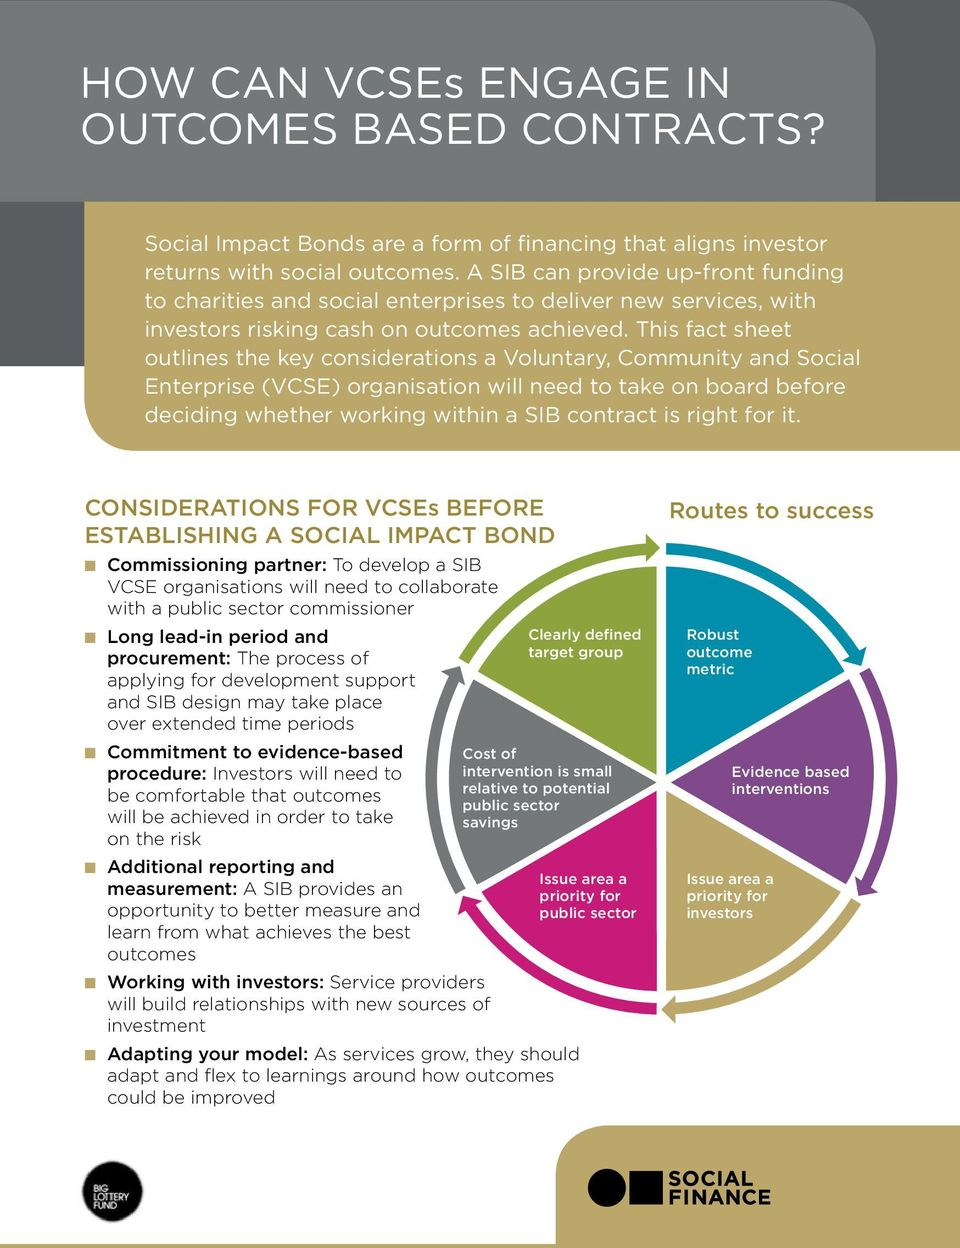 This fact sheet outlines the key considerations a Voluntary, Community and Social Enterprise (VCSE) organisation will need to take on board before deciding whether working within a SIB contract is